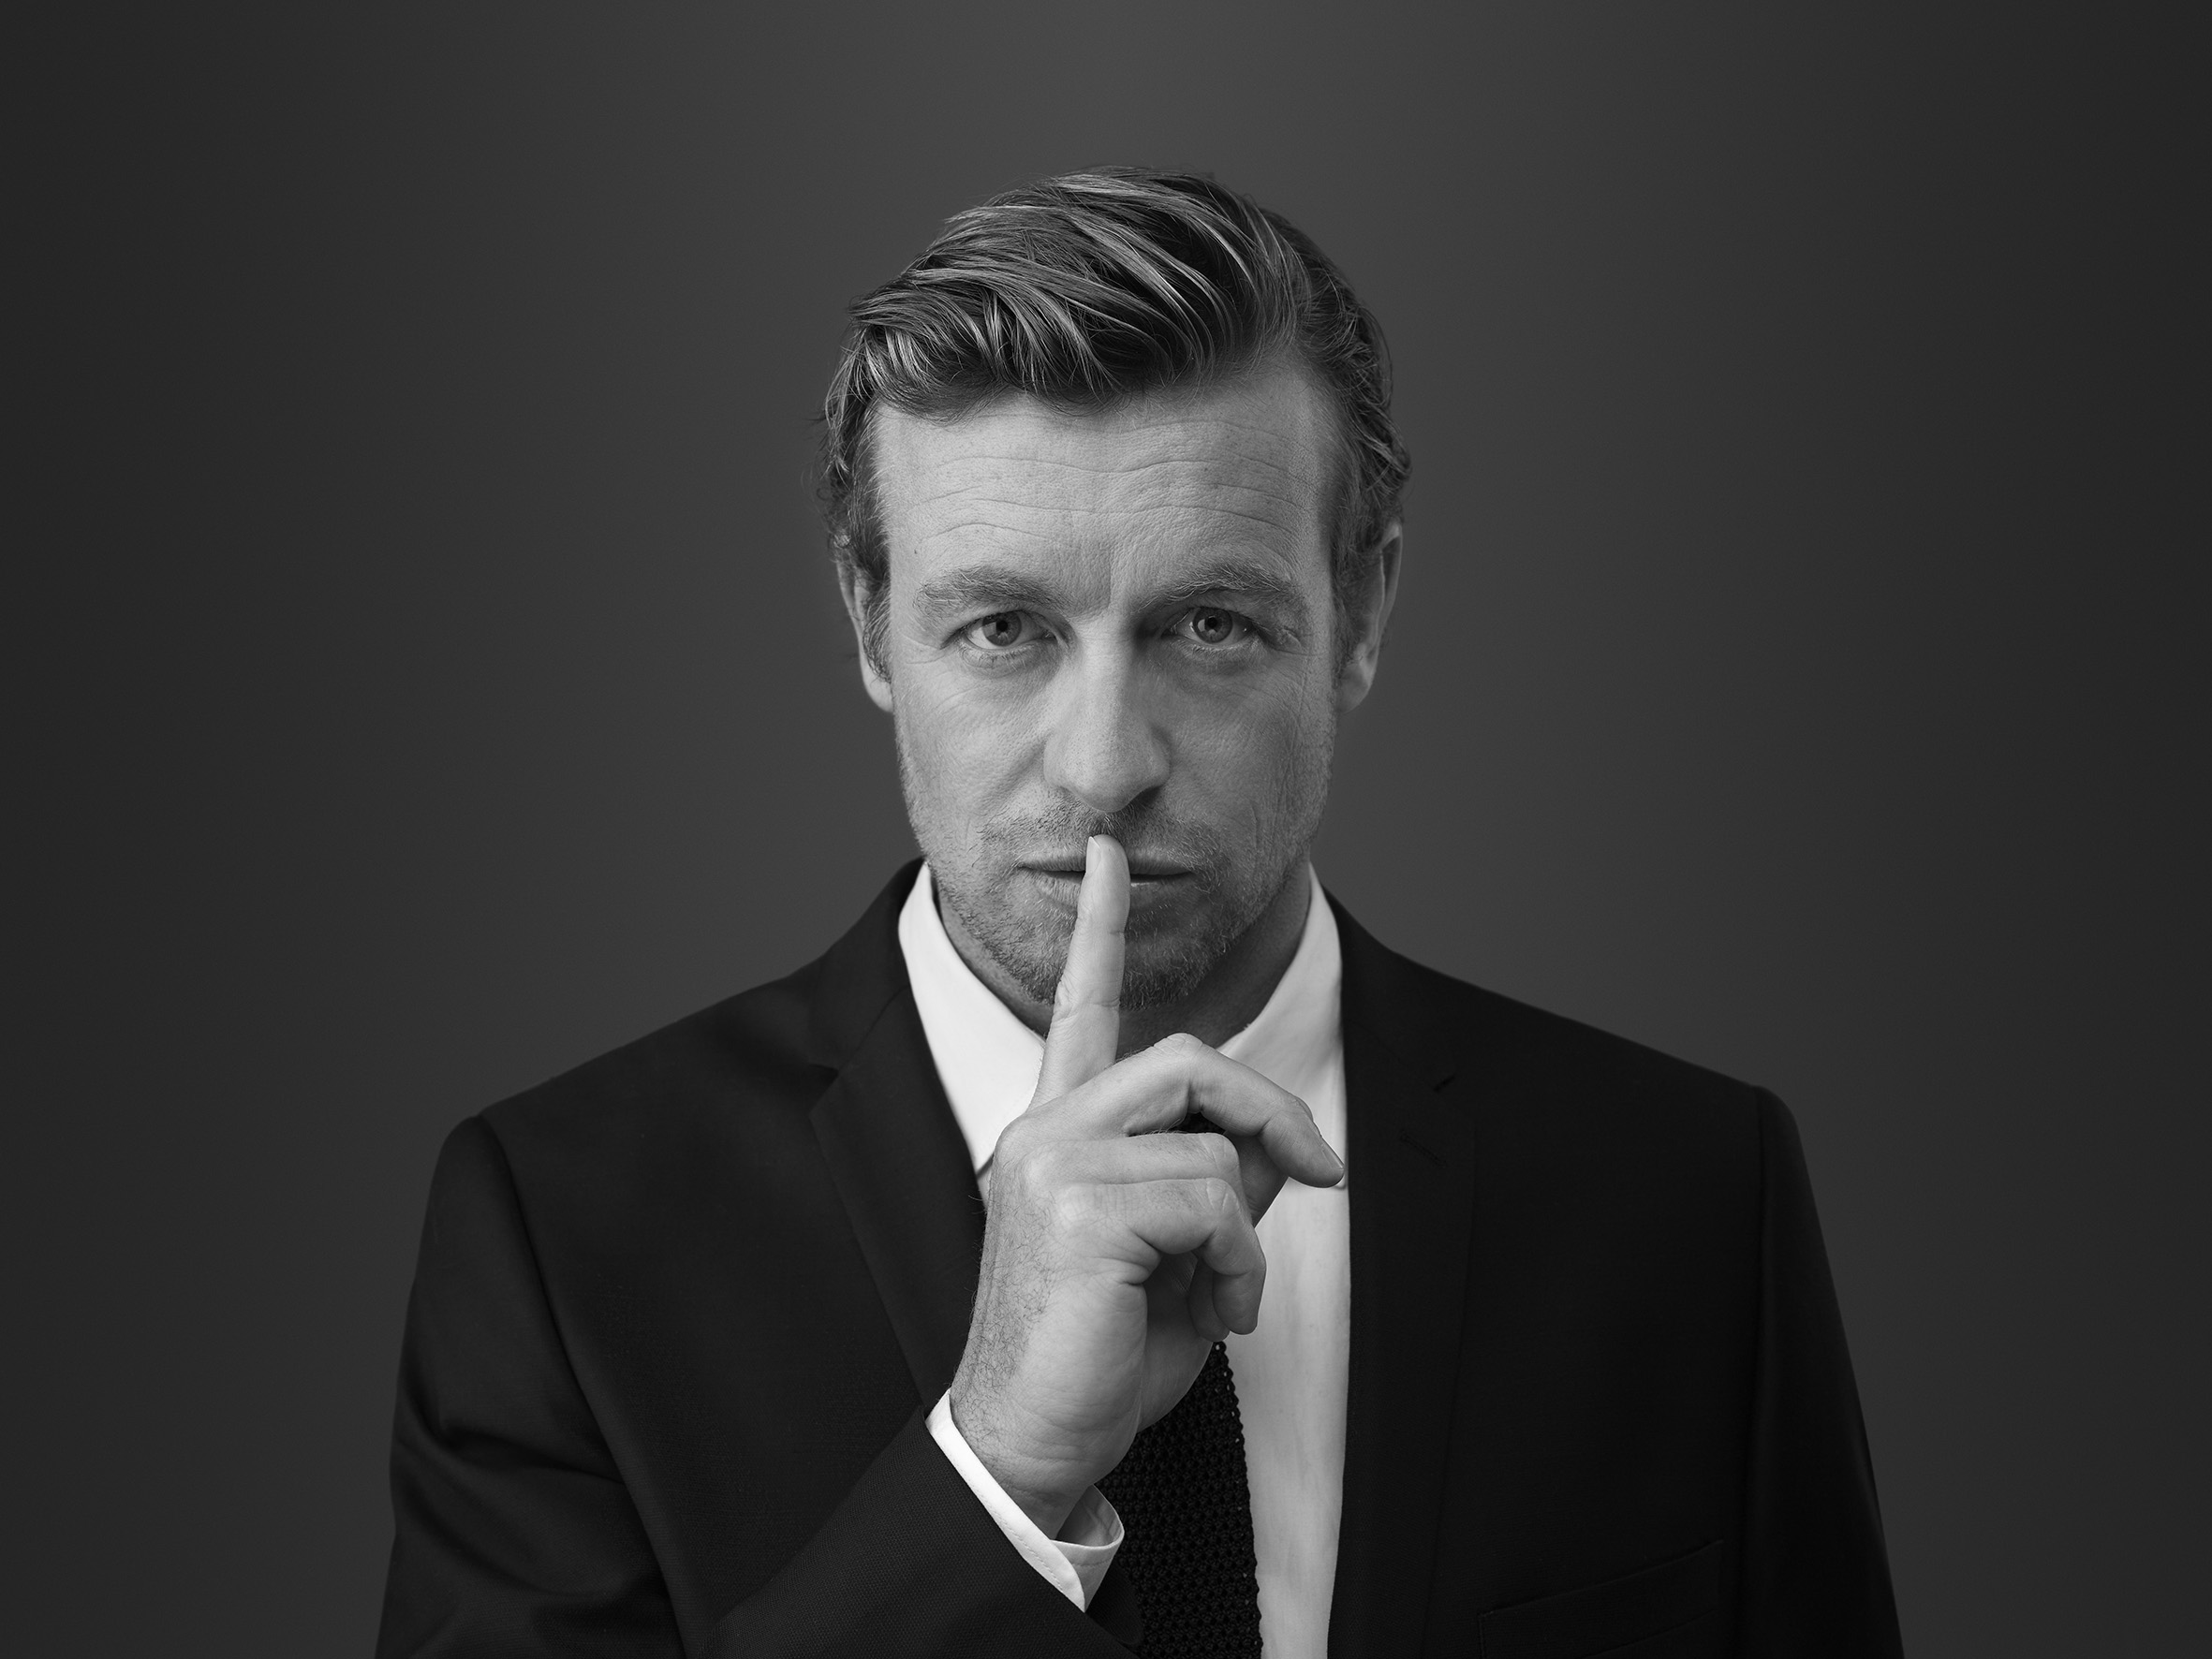 simon baker givenchy gentlemen onlysimon baker 2016, simon baker wife, simon baker 2017, simon baker gif, simon baker young, simon baker breath, simon baker twitter, simon baker family, simon baker givenchy, simon baker vk, simon baker facebook, simon baker daughter, simon baker gif tumblr, simon baker height, simon baker film, simon baker wiki, simon baker gentlemen only, simon baker givenchy gentlemen only, simon baker nicholas bishop, simon baker suit